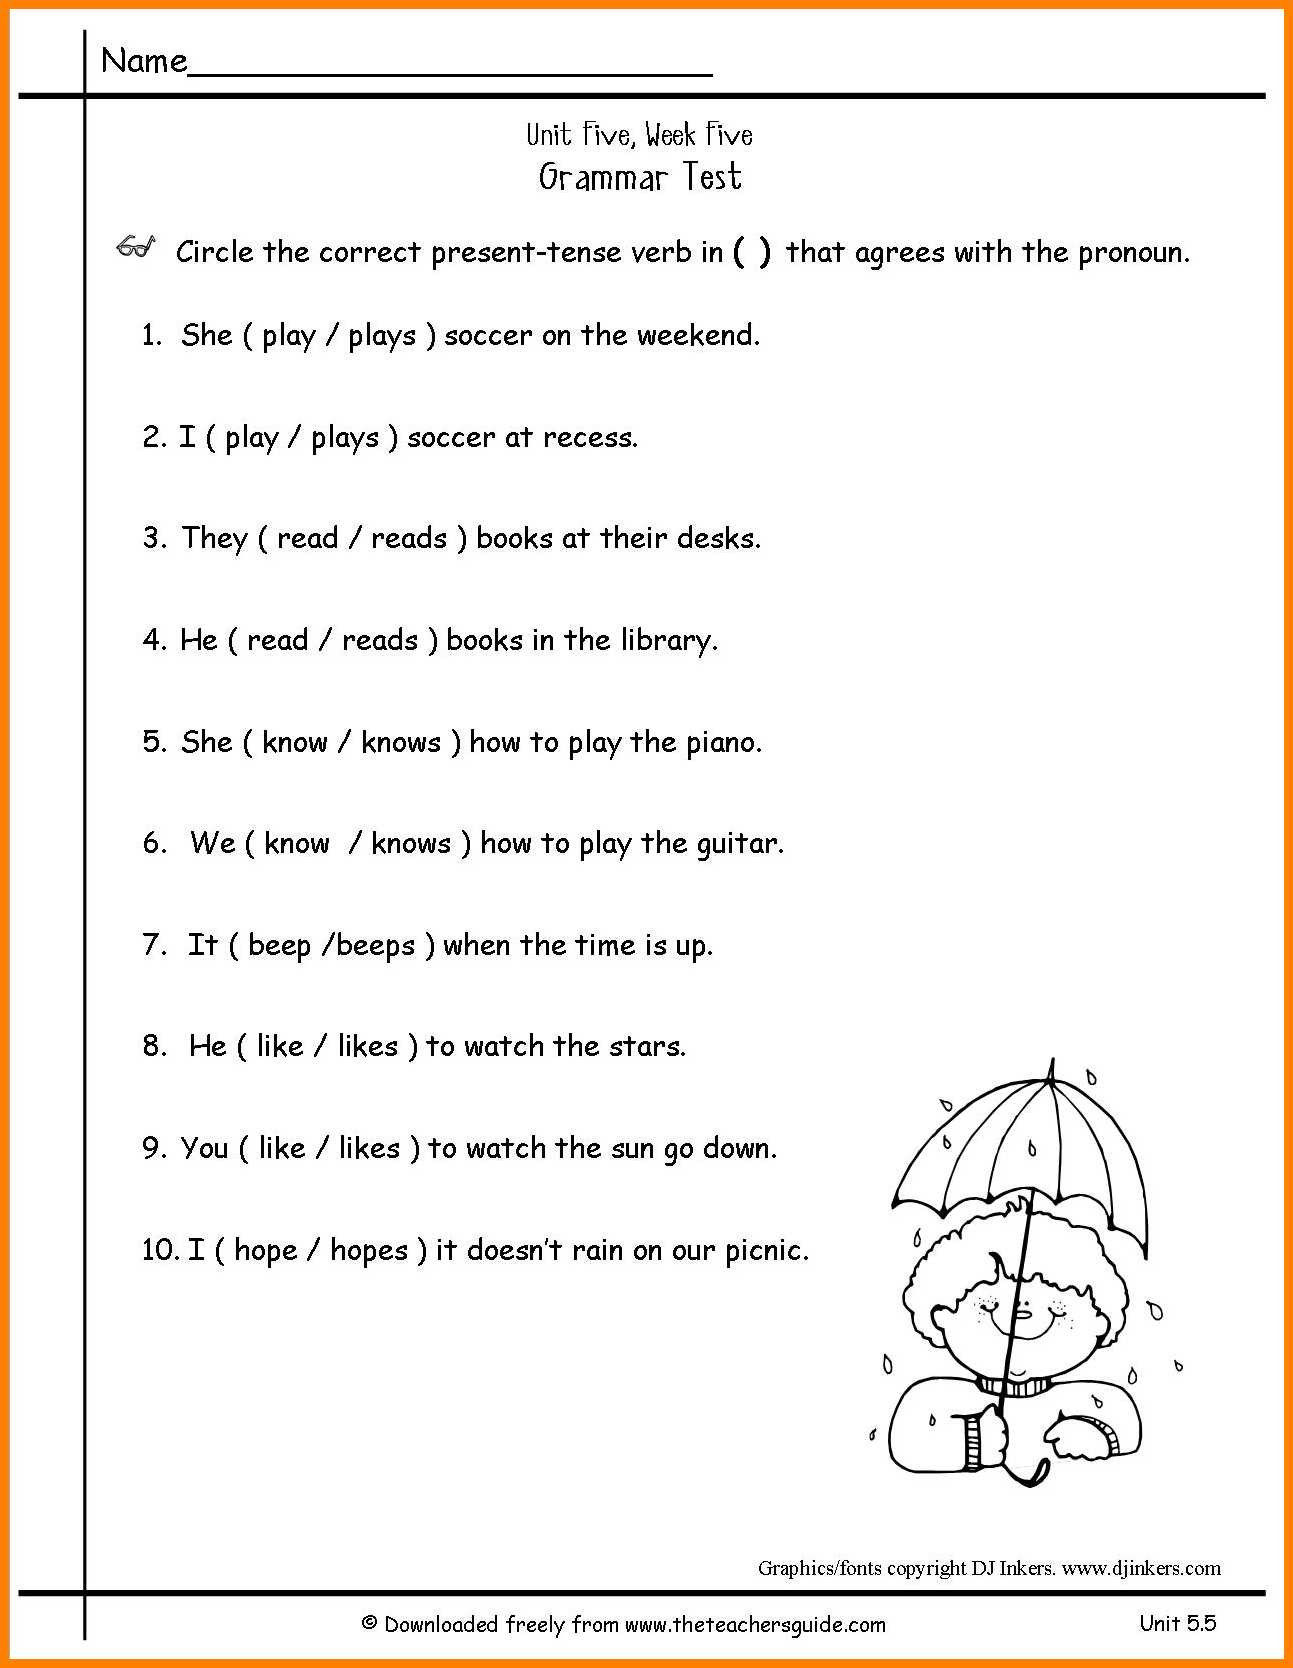 Relative Pronouns Worksheet 4th Grade Fourth Grade Pronouns Worksheet